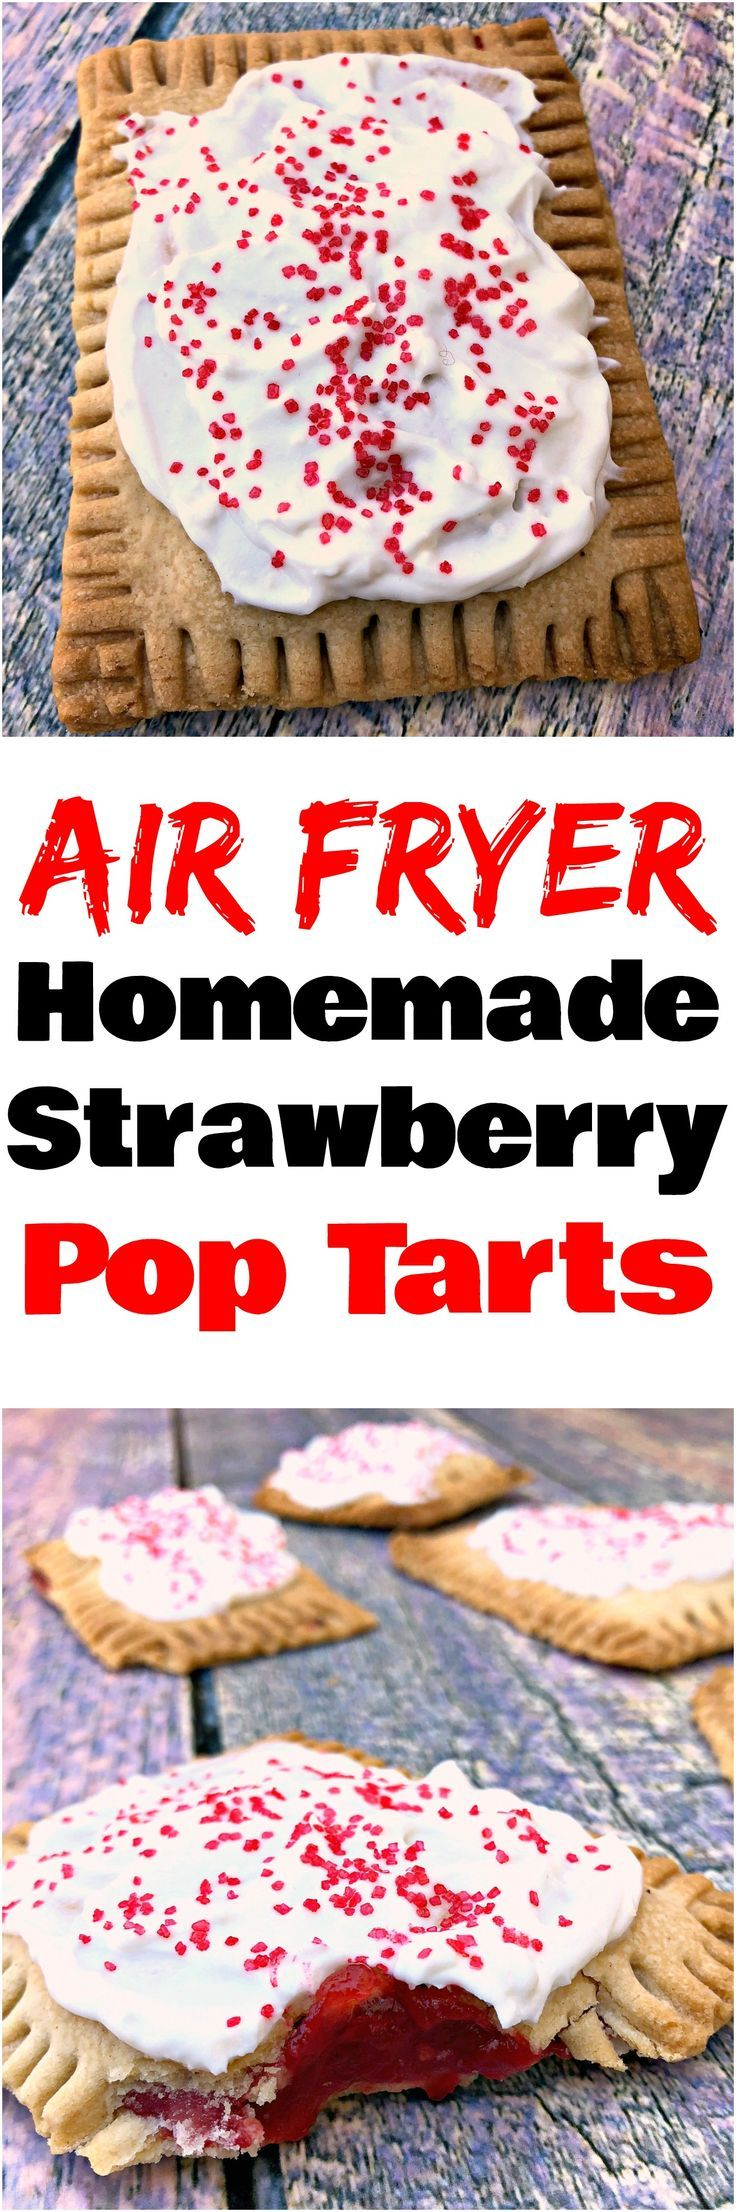 Air Fryer Homemade Strawberry Pop Tarts is a quick and easy healthy dessert recipe with refined sugar-free frosting using reduced-fat cream cheese, vanilla Greek yogurt, and stevia. A kid-friendly recipe that is great for adults, too! #PopTarts #Homemade #AirFryer #AirFryerRecipes